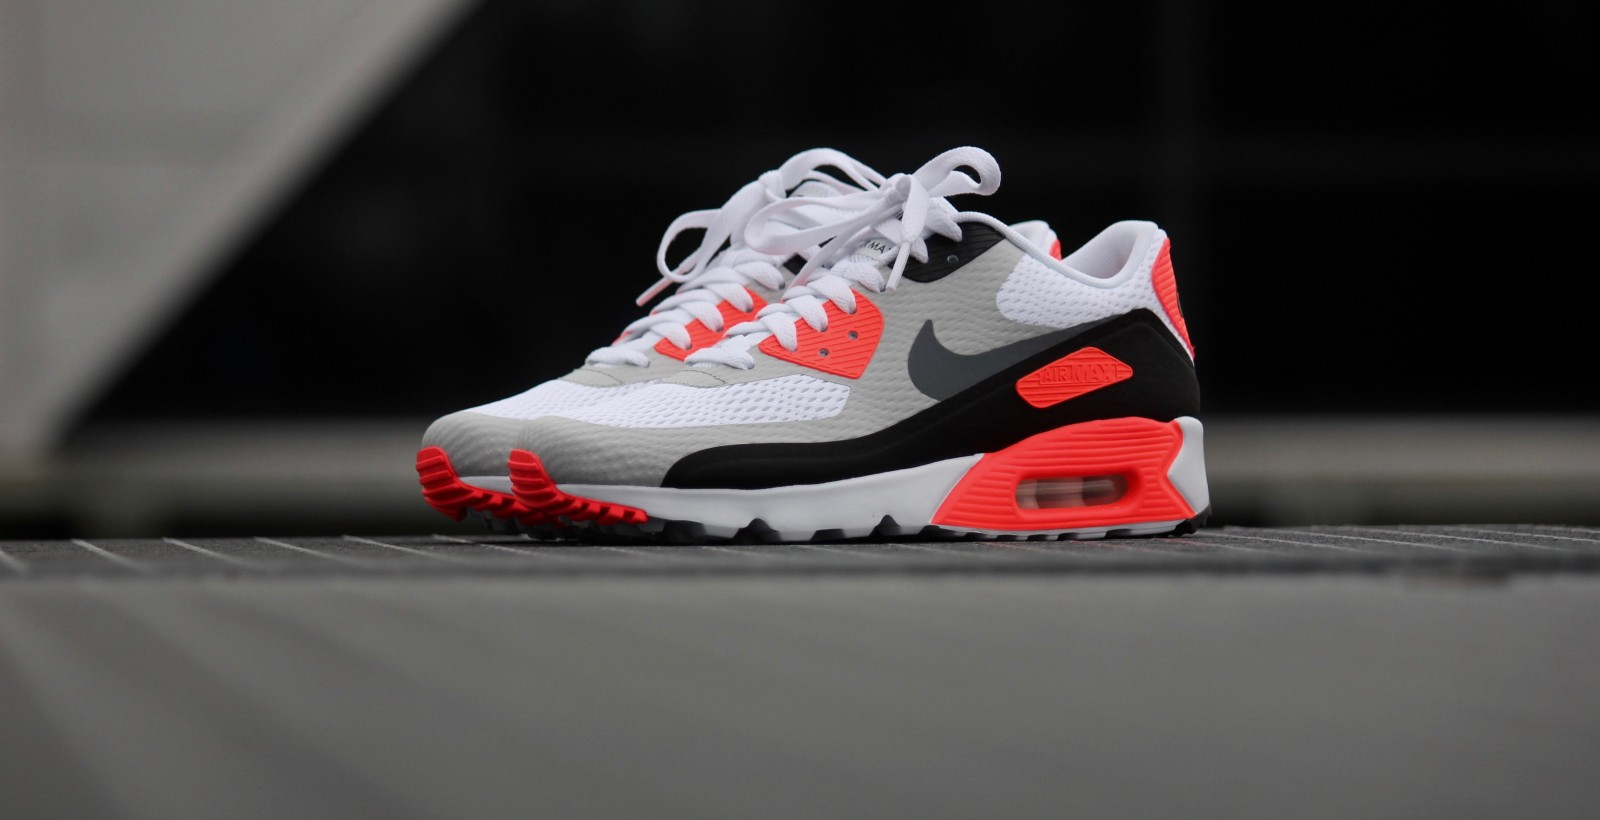 online retailer 4a1ca 46078 Nike Air Max 90 Ultra Essential OG Infrared